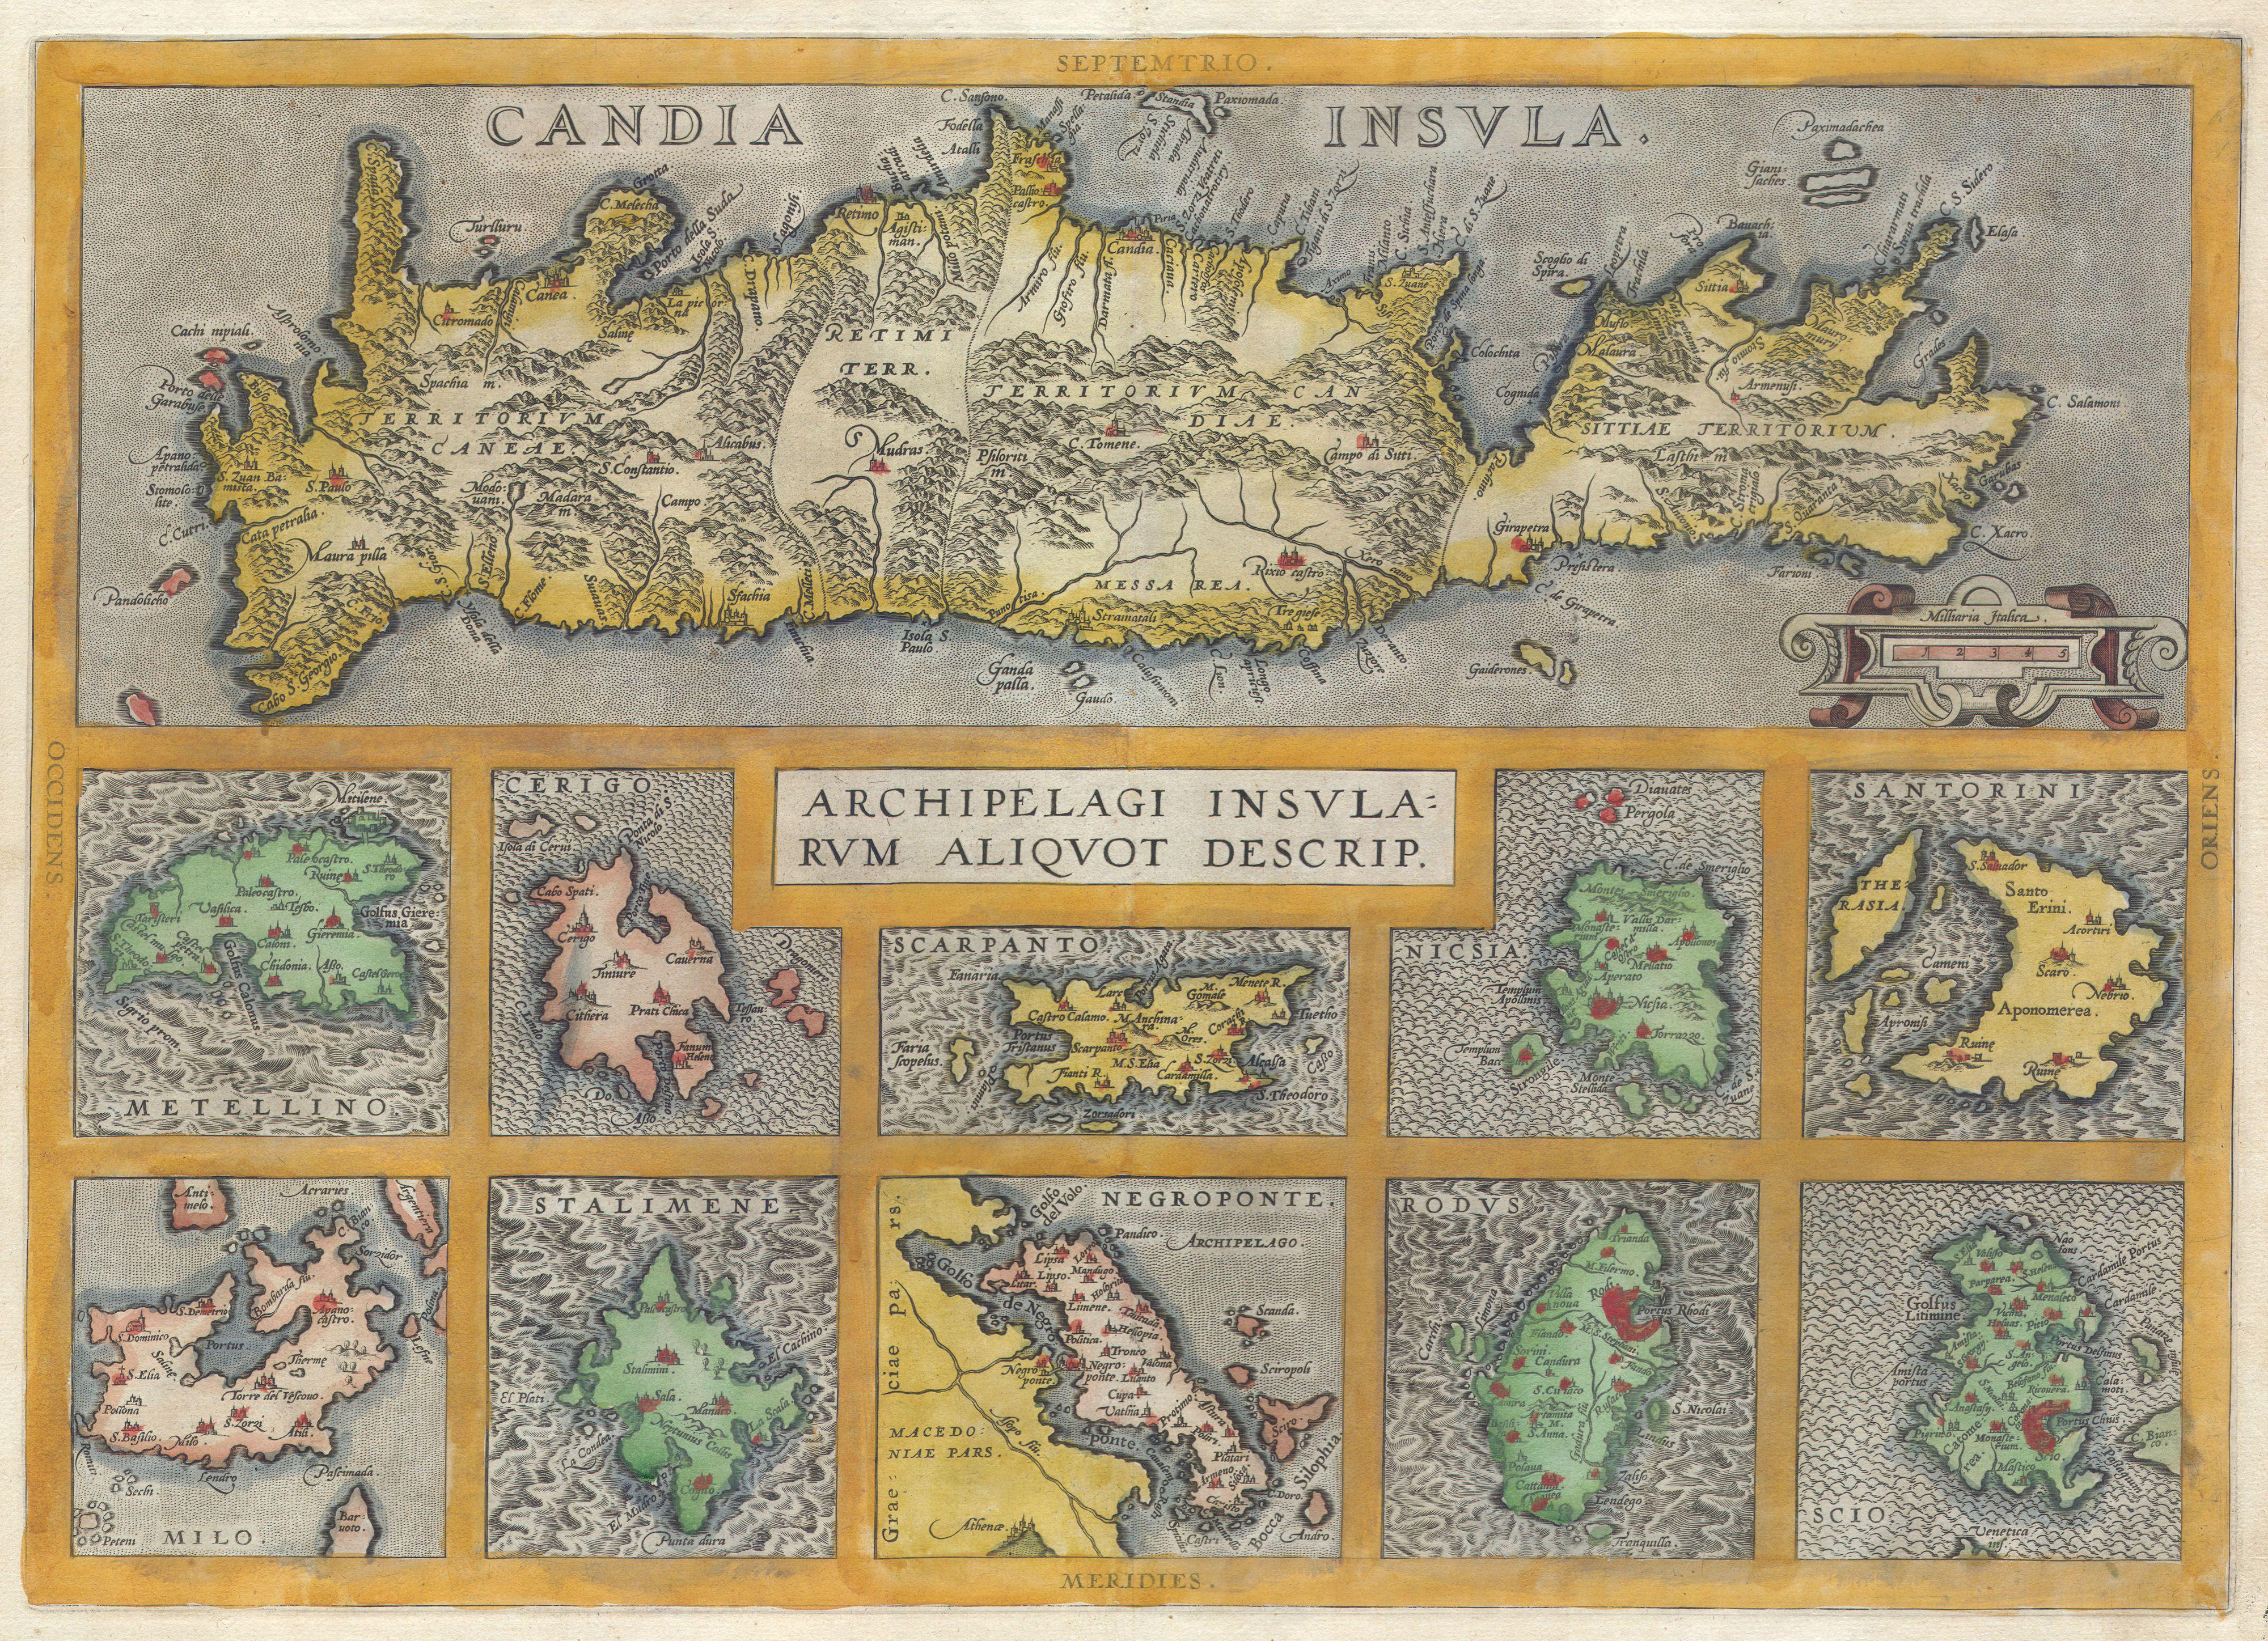 File:1584 Ortelius Map of Crete (Candia) and 10 Greek Islands ... on map of mouse island, map of sicily, map of ionian greek islands, map of greek islands in english, map of turkey and greek islands, map of islands of greece, map of main land europe, map of isles gk, map of greece with cities, map of the hawaiian islands to print, map of greece showing mount olympus, map of hellenic, map of kalokairi, map of skala greece, map of italy, map of greece with islands, map with towns of evia greece,